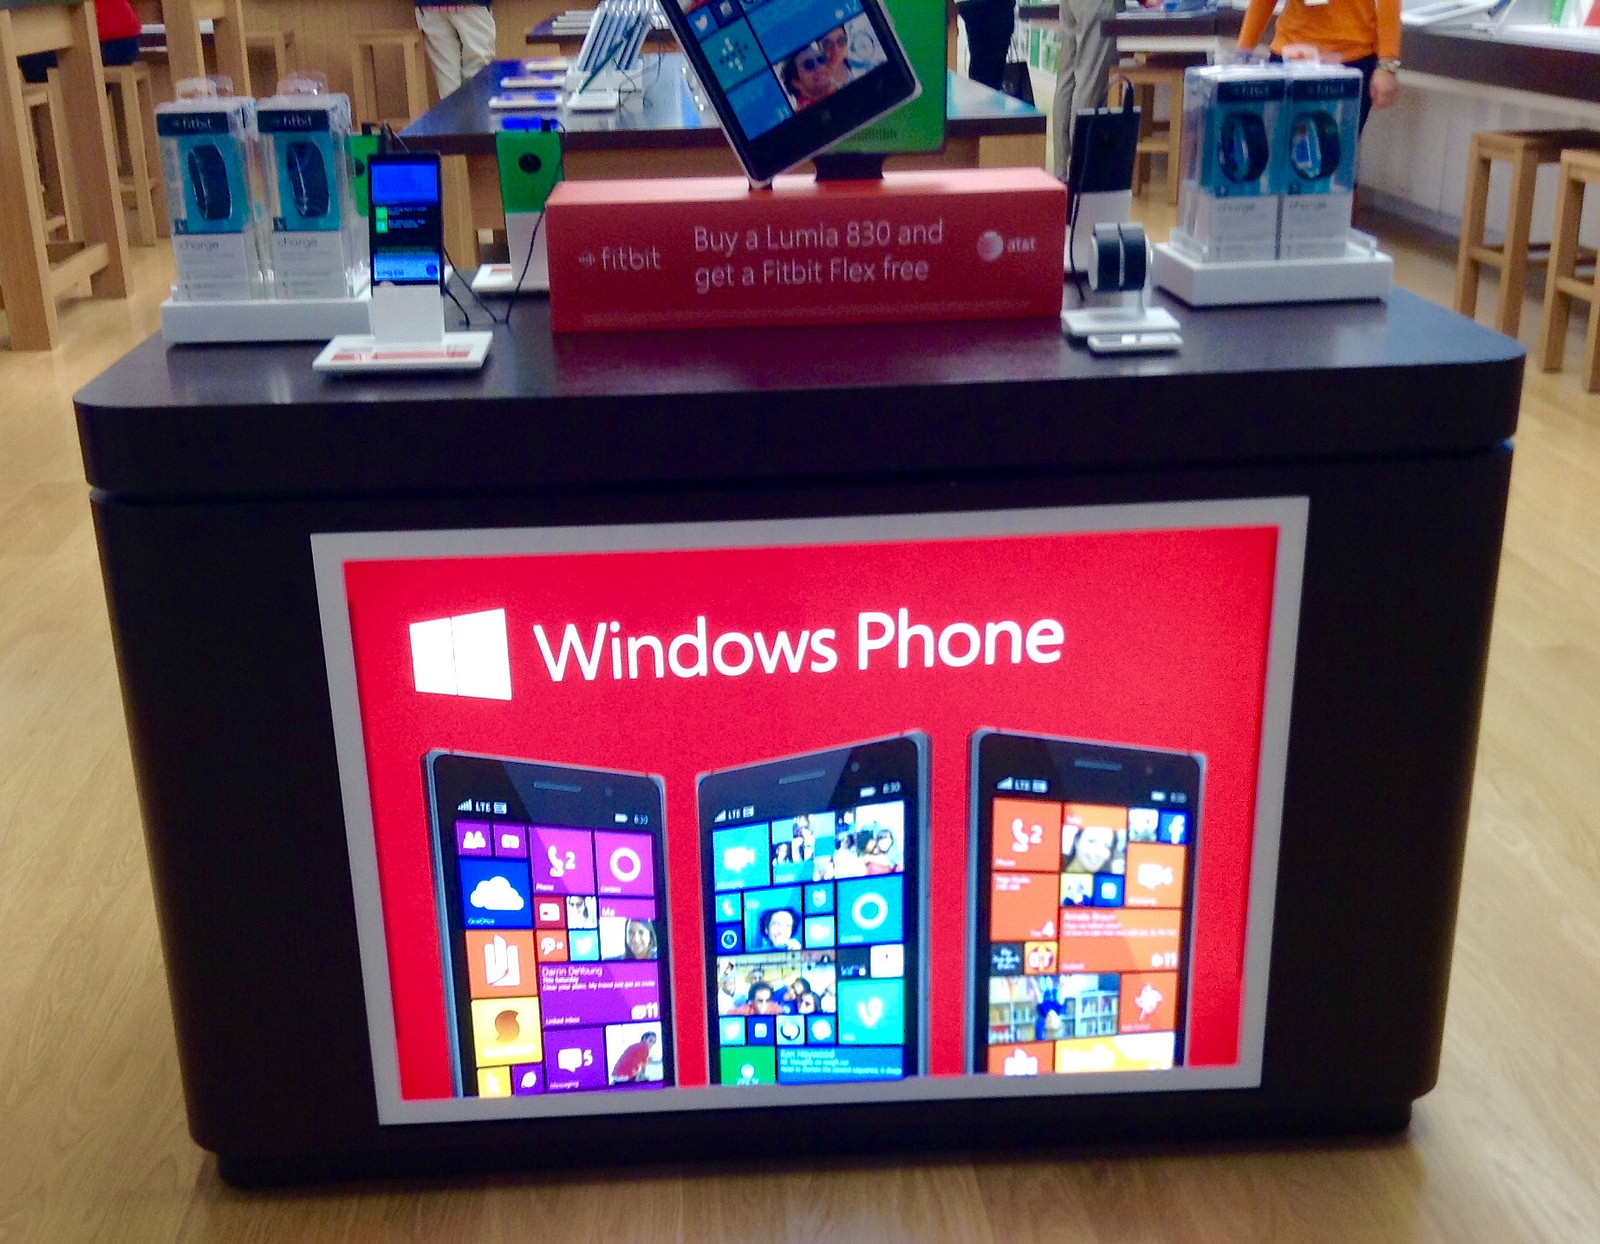 Windows Phone 8 wins over other operating system says Market Share